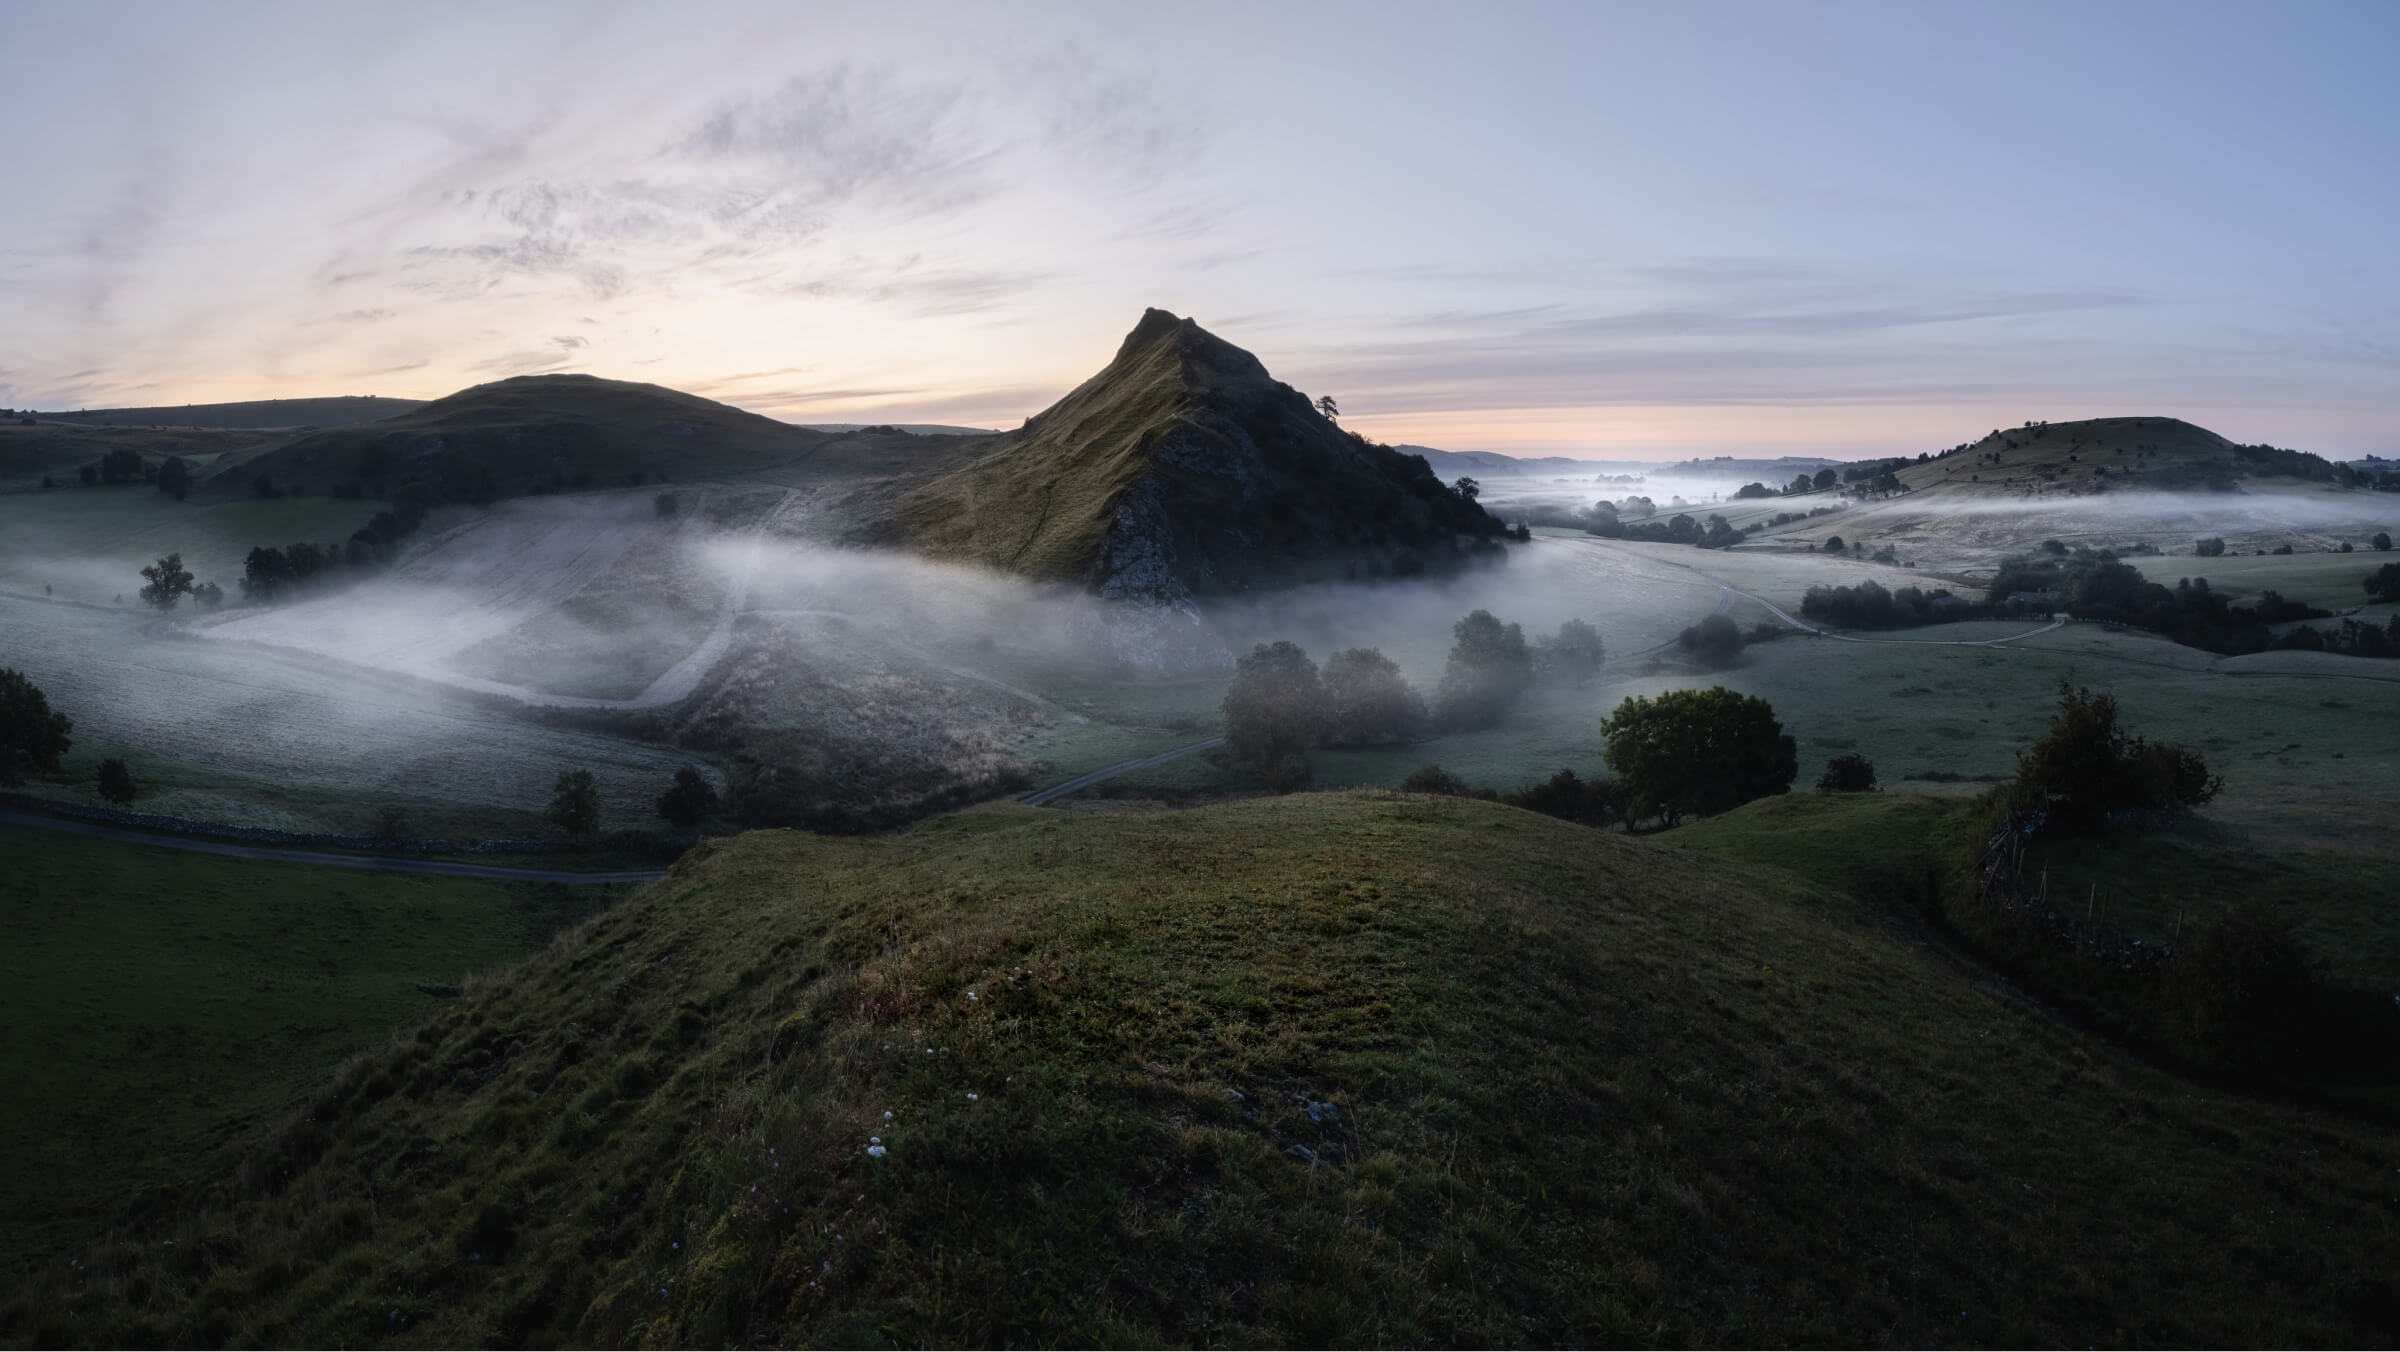 A sharp, jagged mountain juts out through a sprawling scene of farmers fields. A thin veil of mist hangs low in the valley and wraps itself around the mountain.